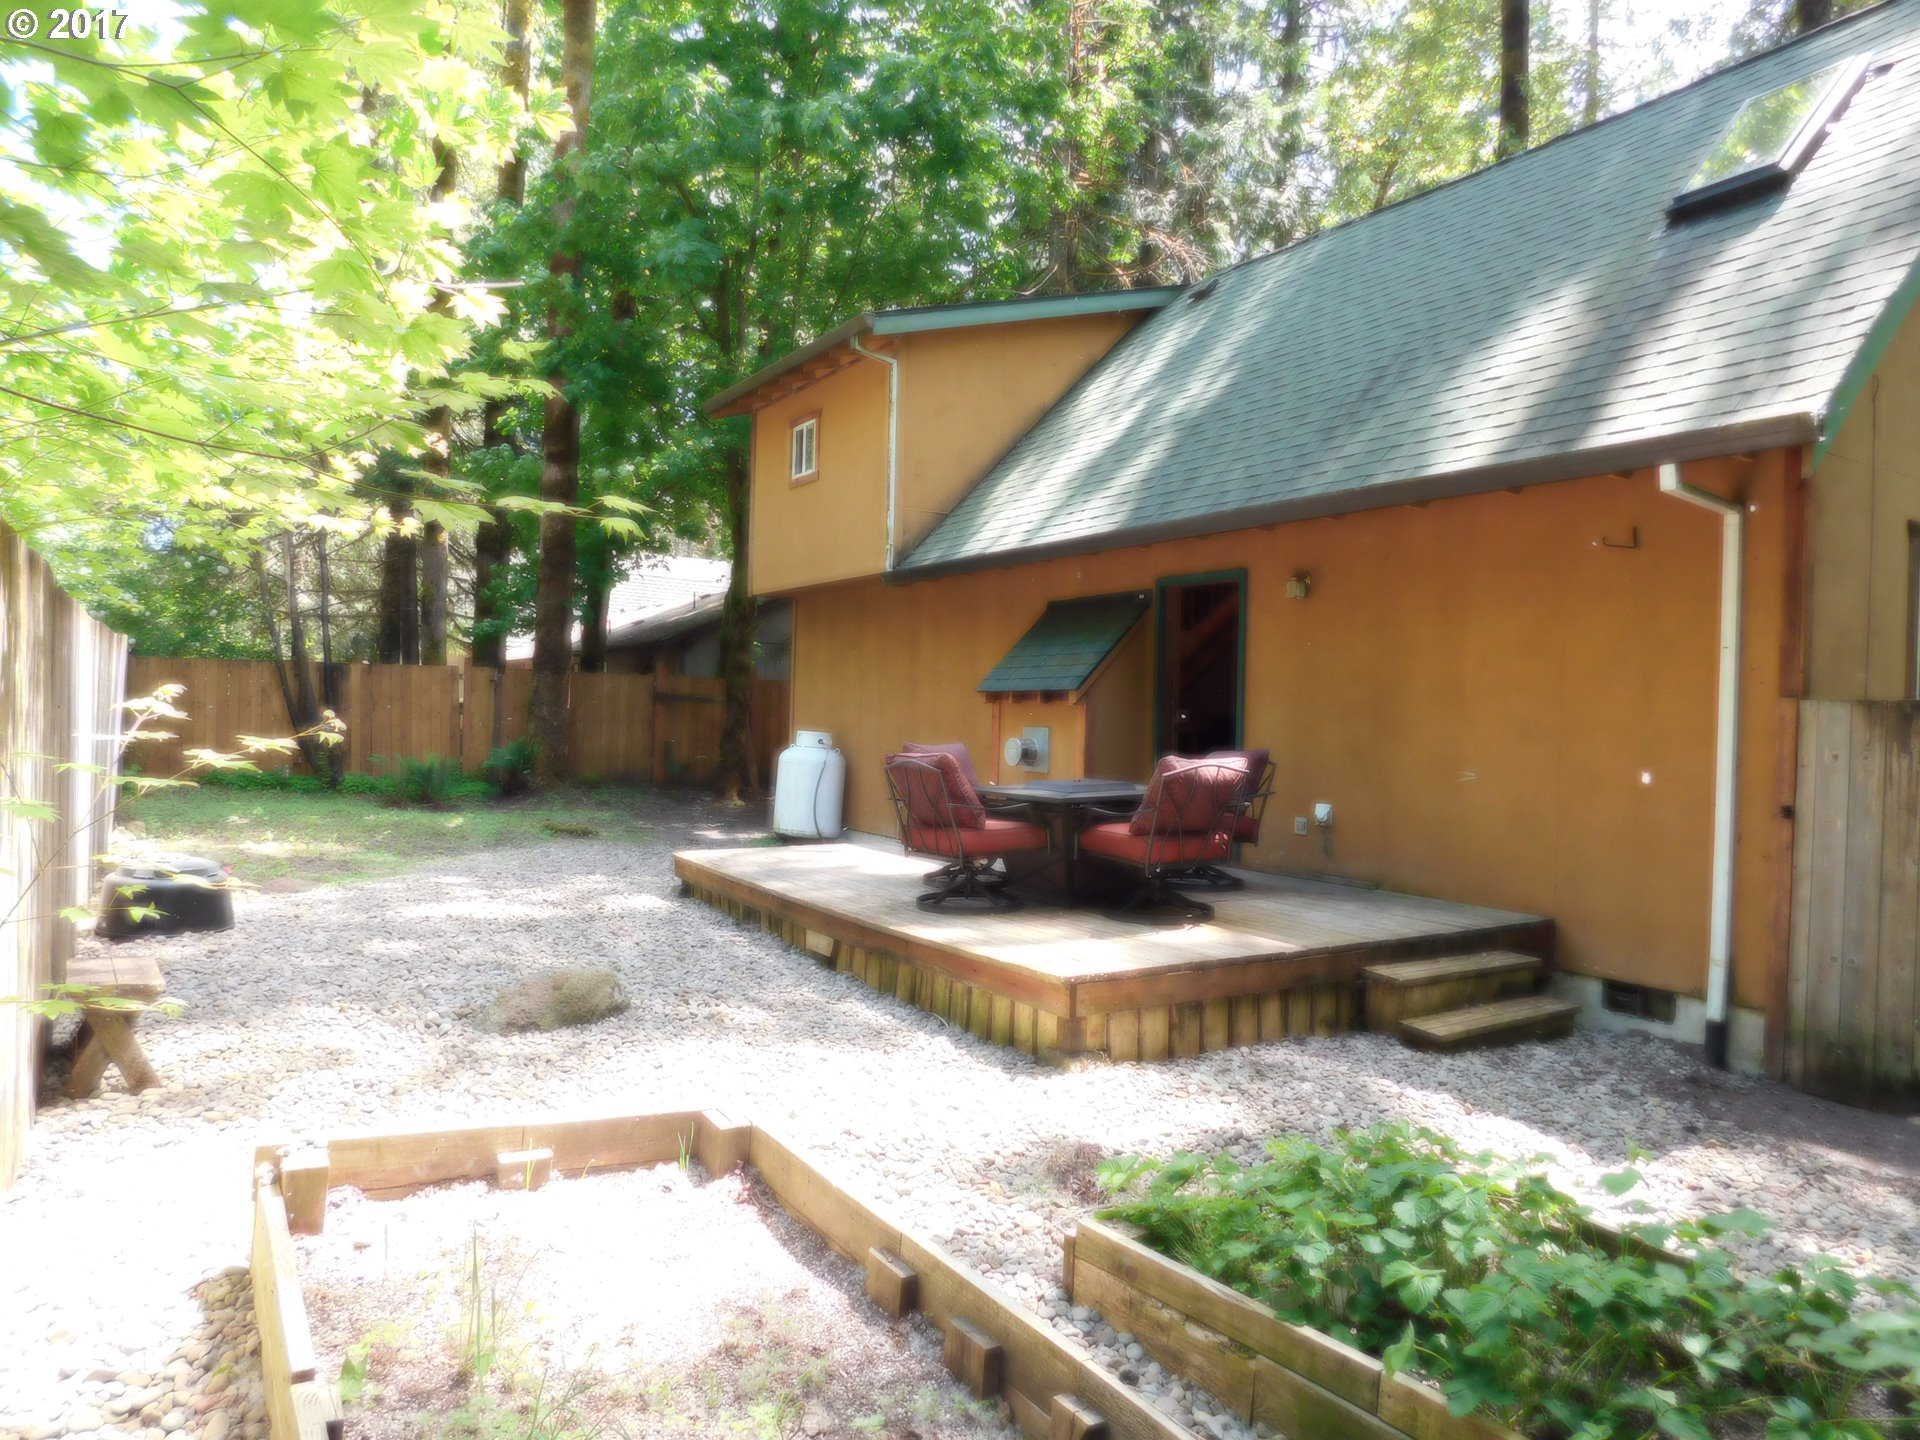 65615 E TIMBERLINE DR Rhododendron, OR 97049 - MLS #: 17213007